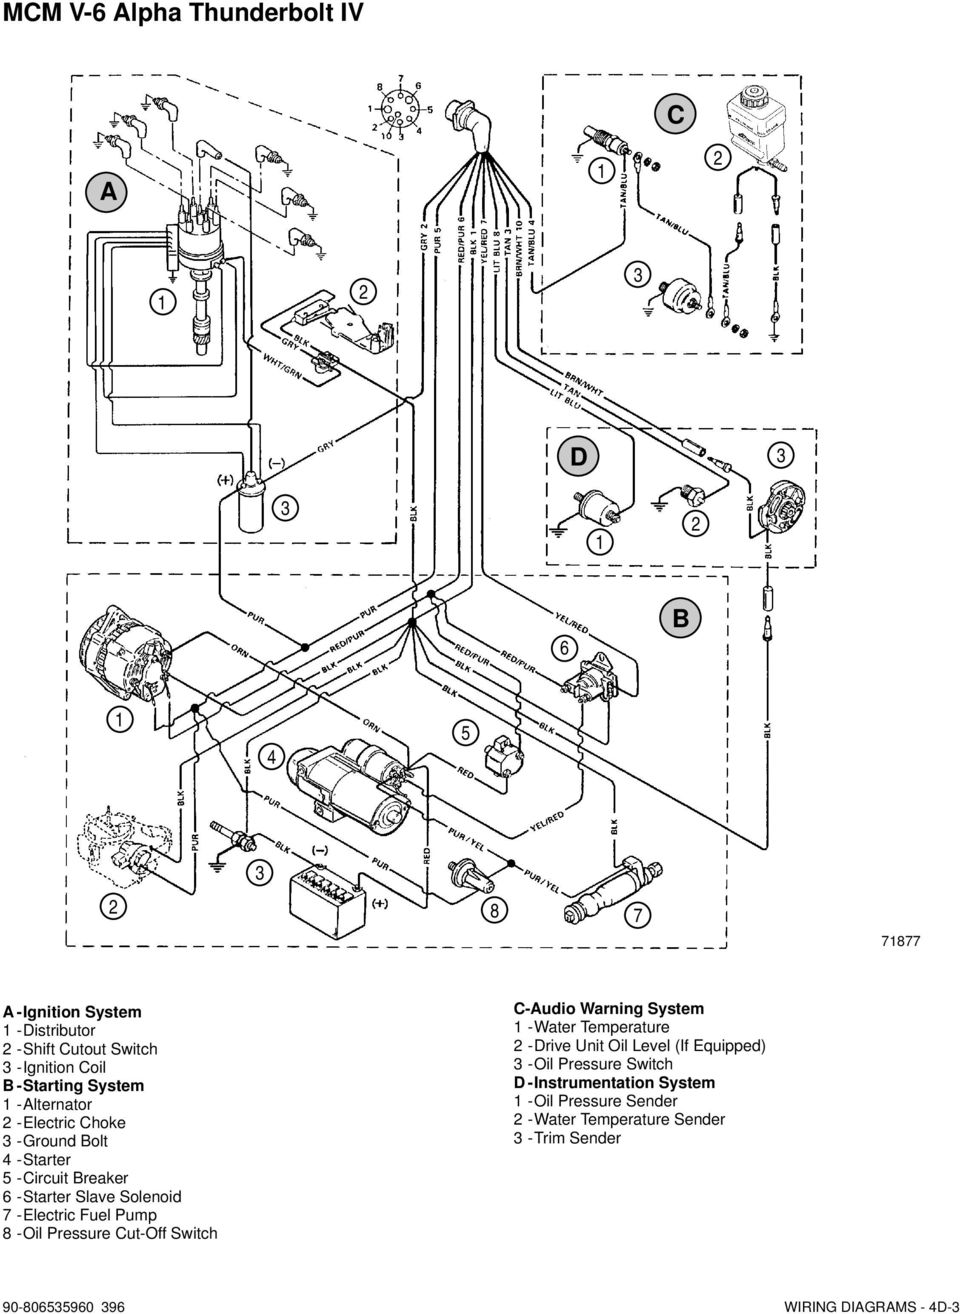 Pre Alpha Mercruiser Wiring Diagram Anything Wiring Diagram 3.0 Mercruiser  Wiring-Diagram Pre Alpha Mercruiser Wiring Diagram